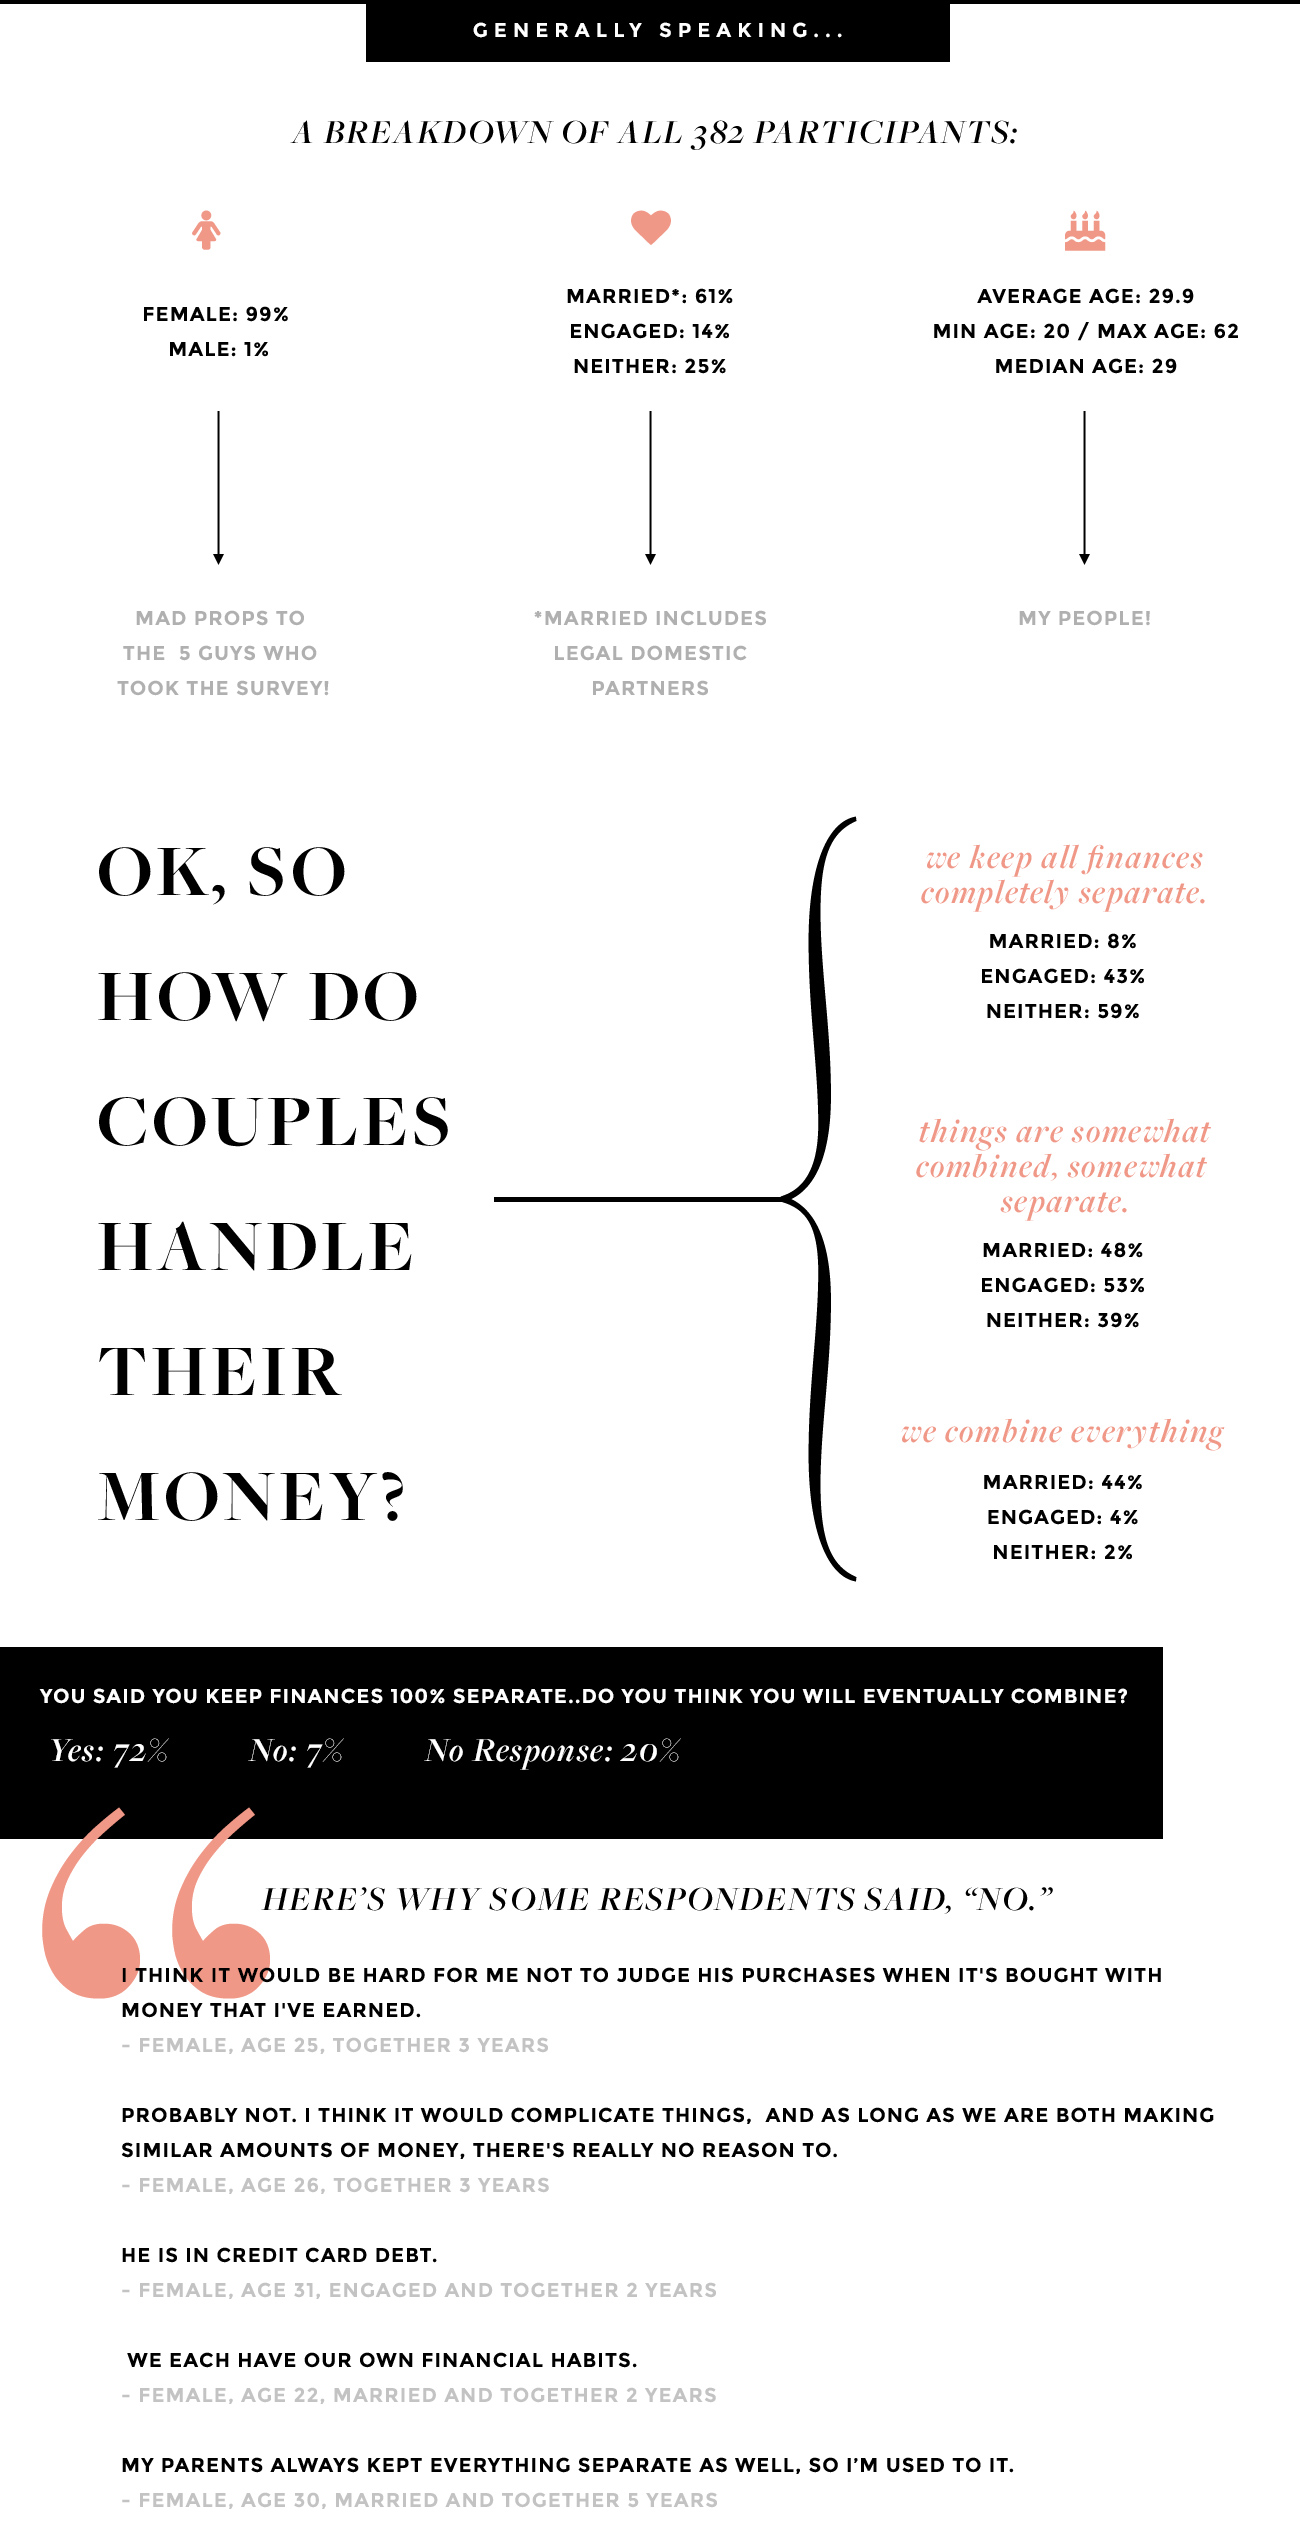 Survey on relationships and money - General